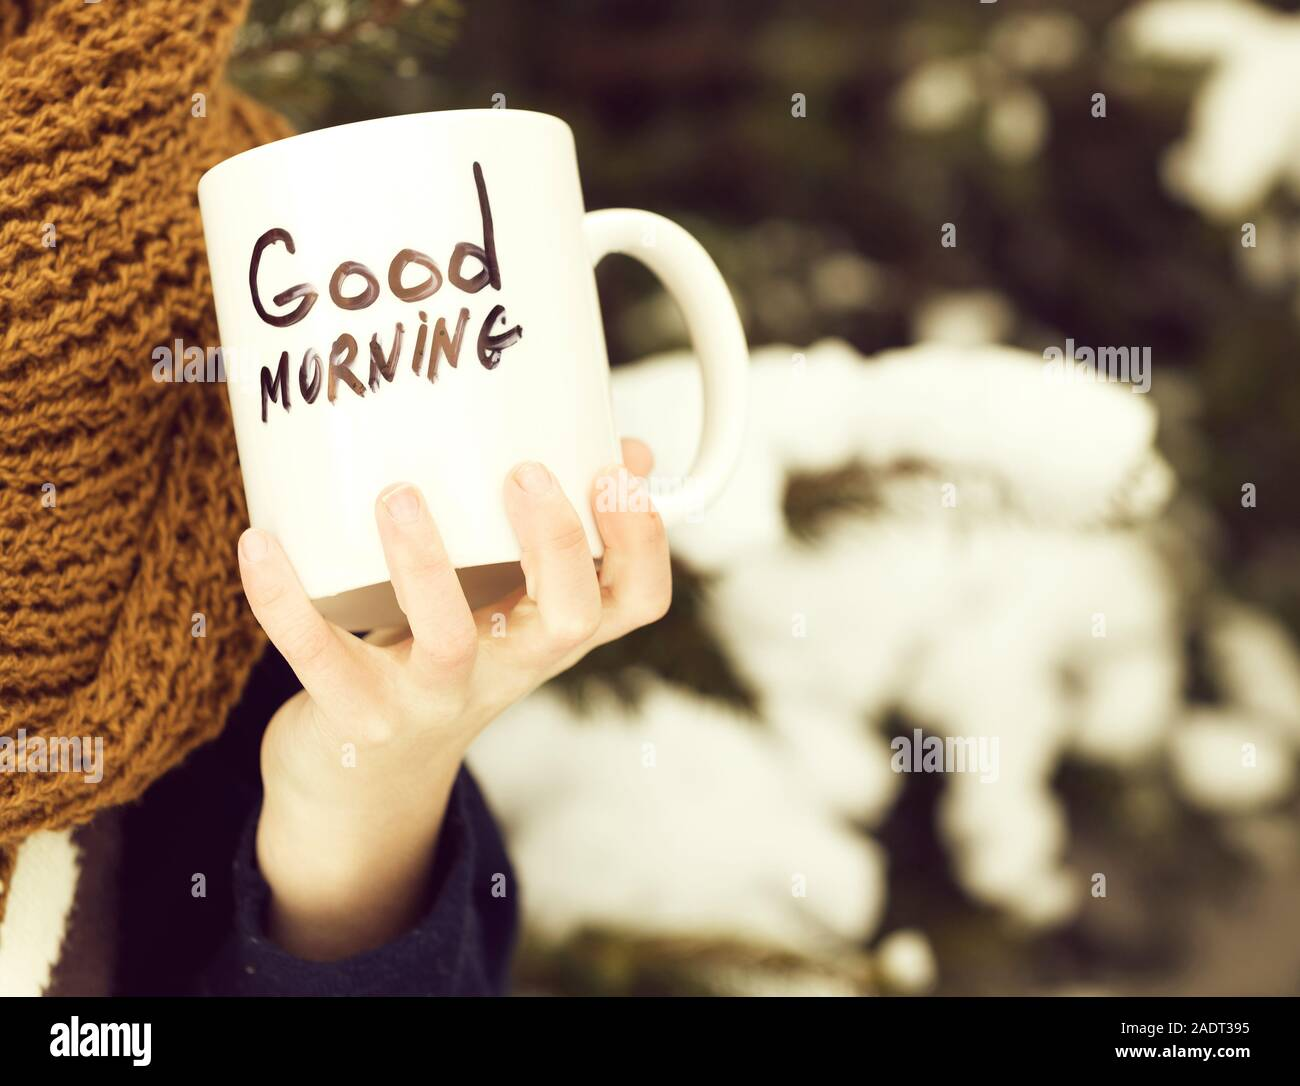 Good Morning Winter High Resolution Stock Photography And Images Alamy